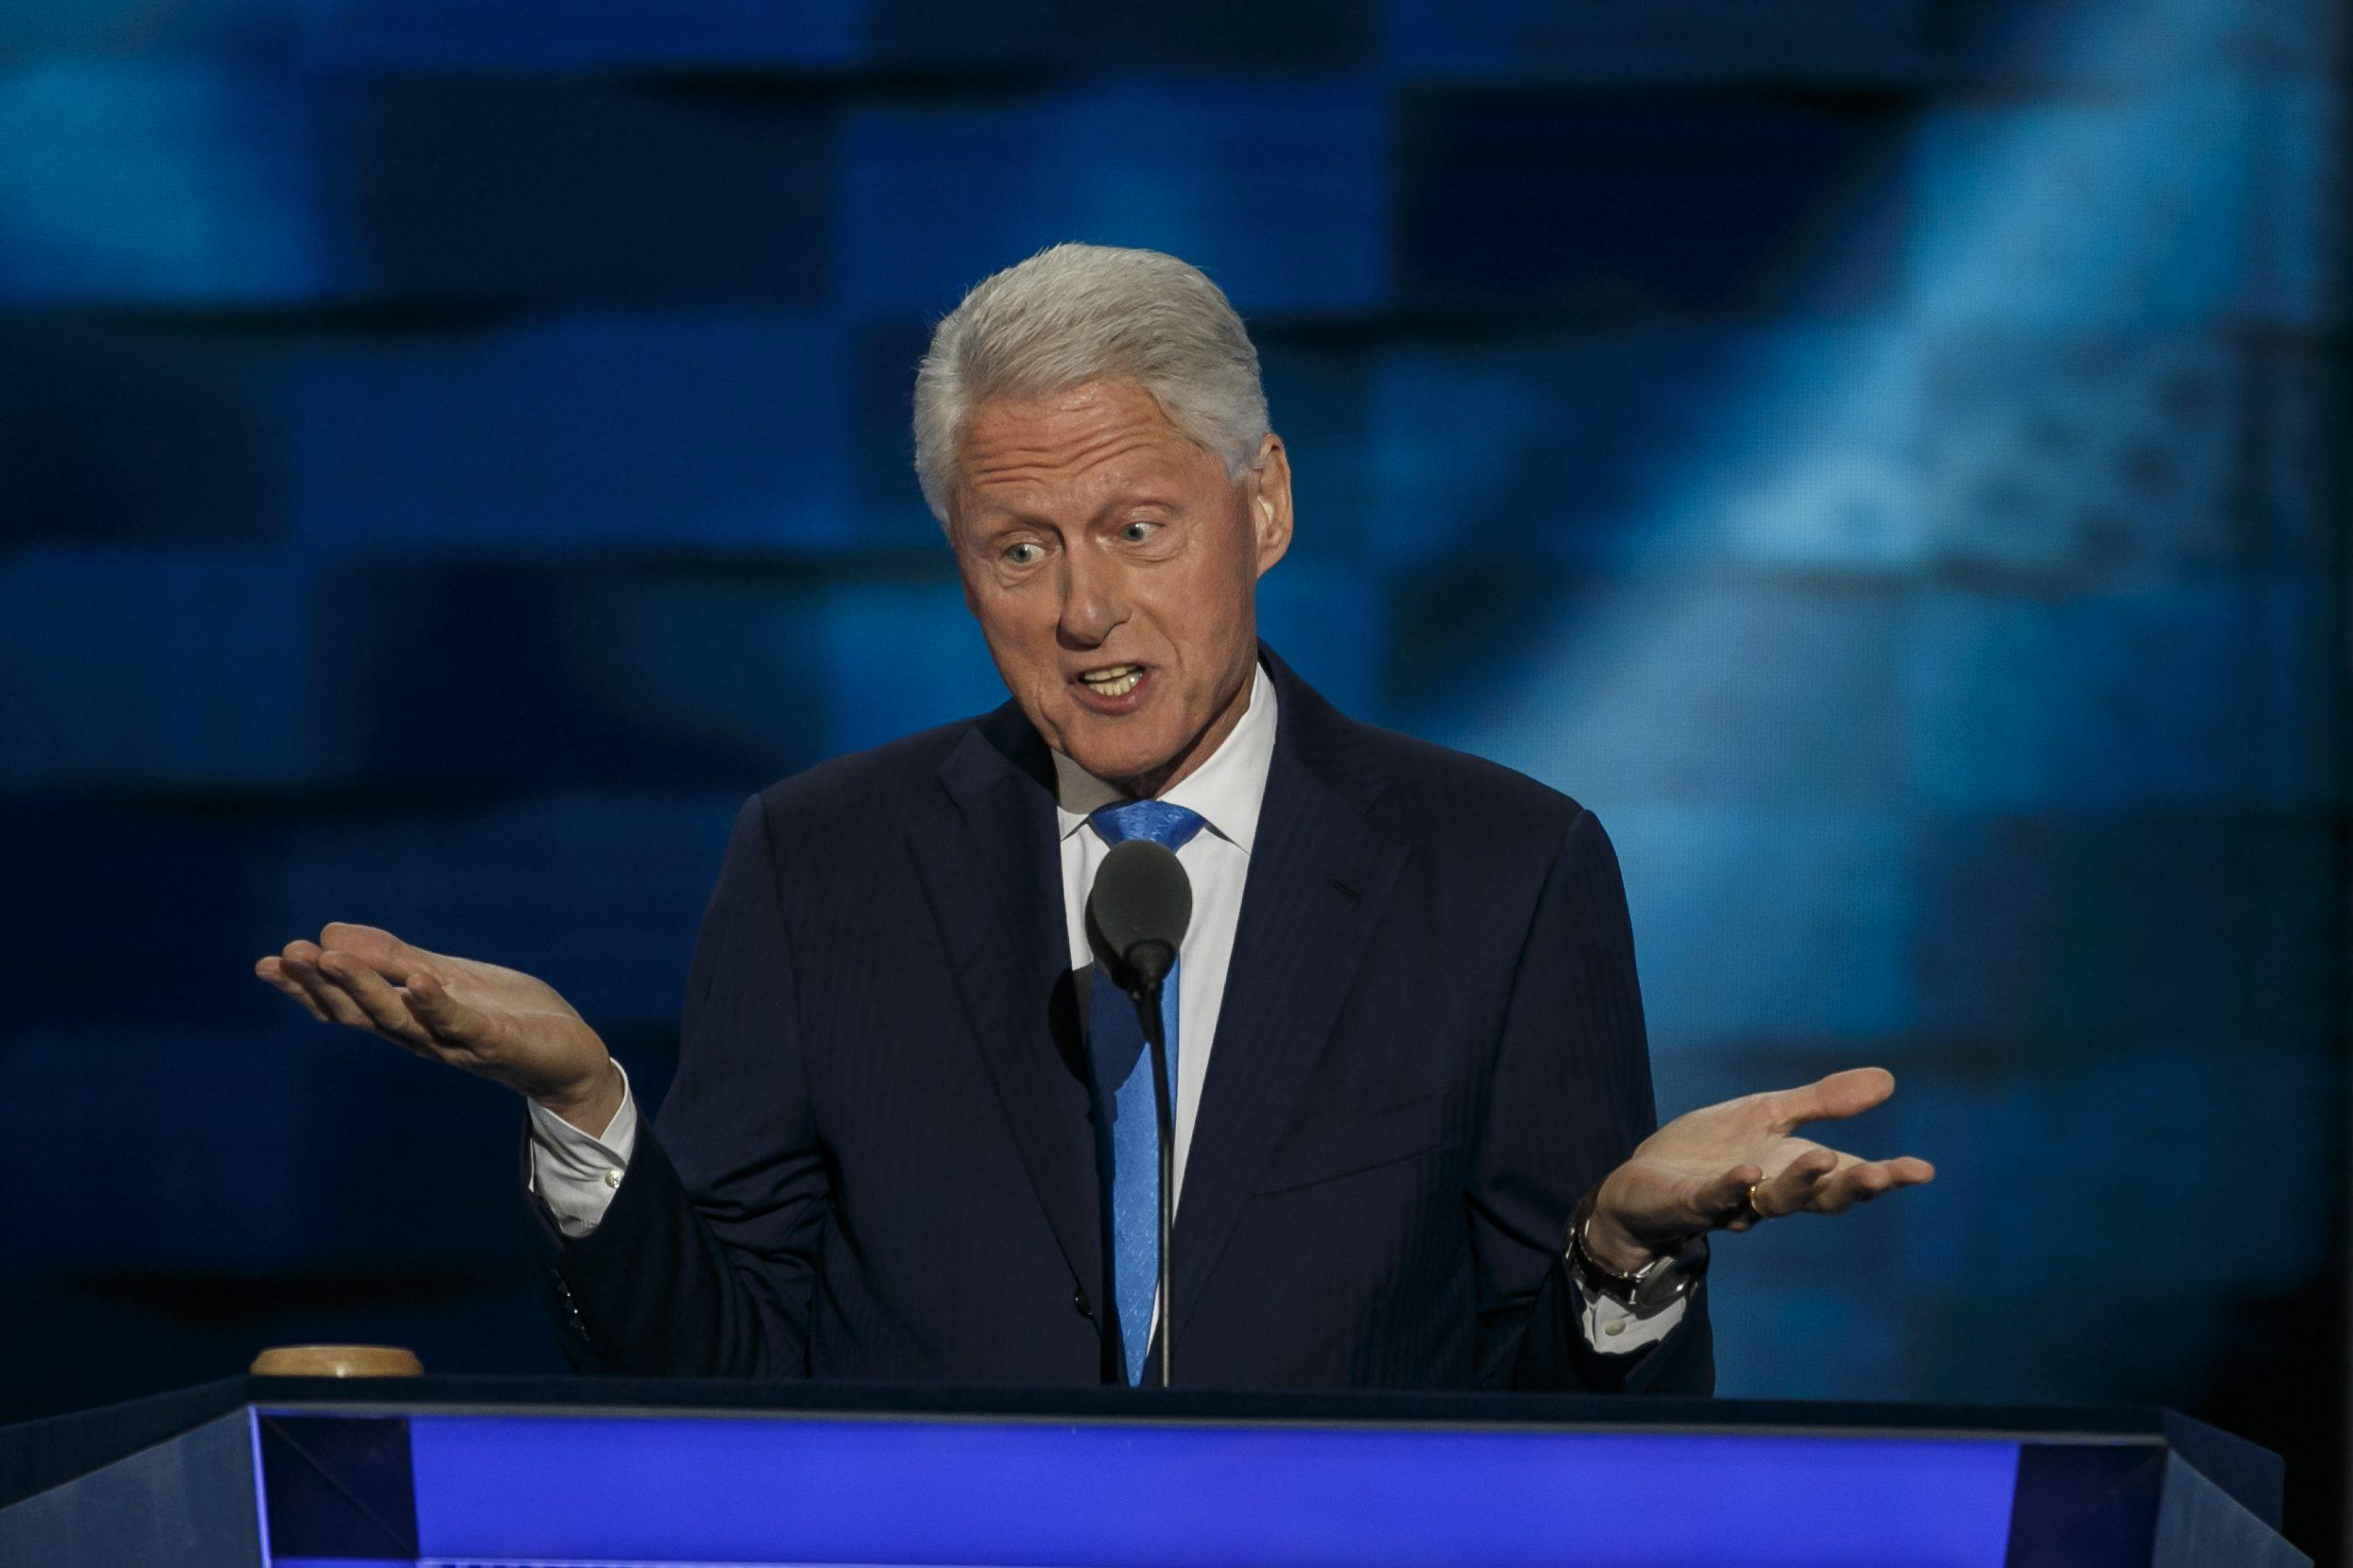 Former President Bill Clinton speaks at the Democratic National Convention in Philadelphia on July 26, 2016. A memo released by WikiLeaks on Wednesday, Oct. 26, 2016, indicates a former aide arranged for $50 million in payments for the former president, part of a complicated mingling of lucrative business deals and charity work of the Clinton Foundation. (Marcus Yam/Los Angeles Times/TNS)